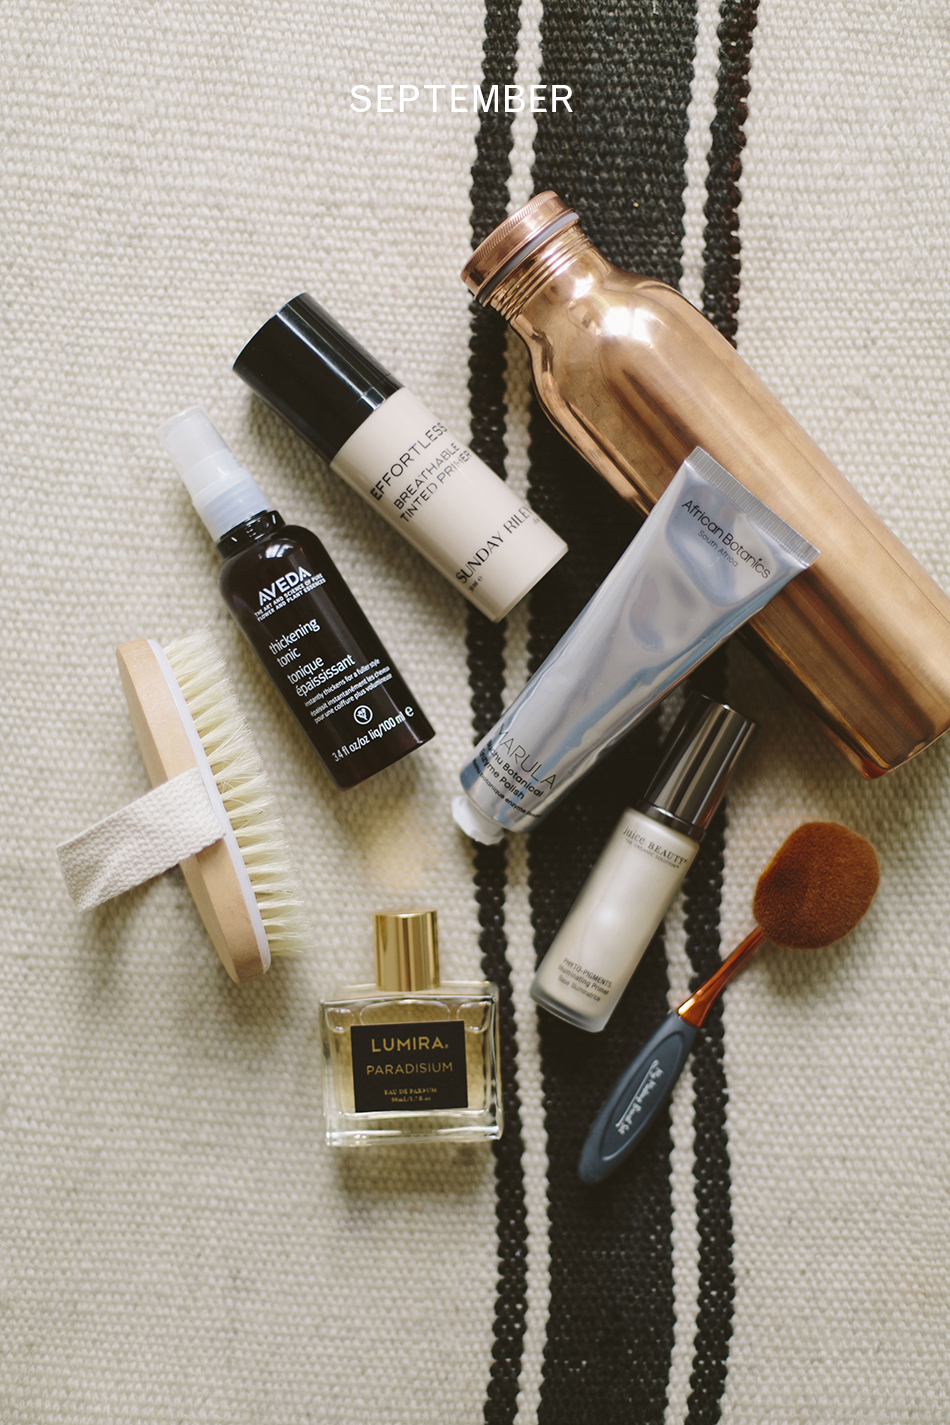 beauty-bag-september-could-i-have-that